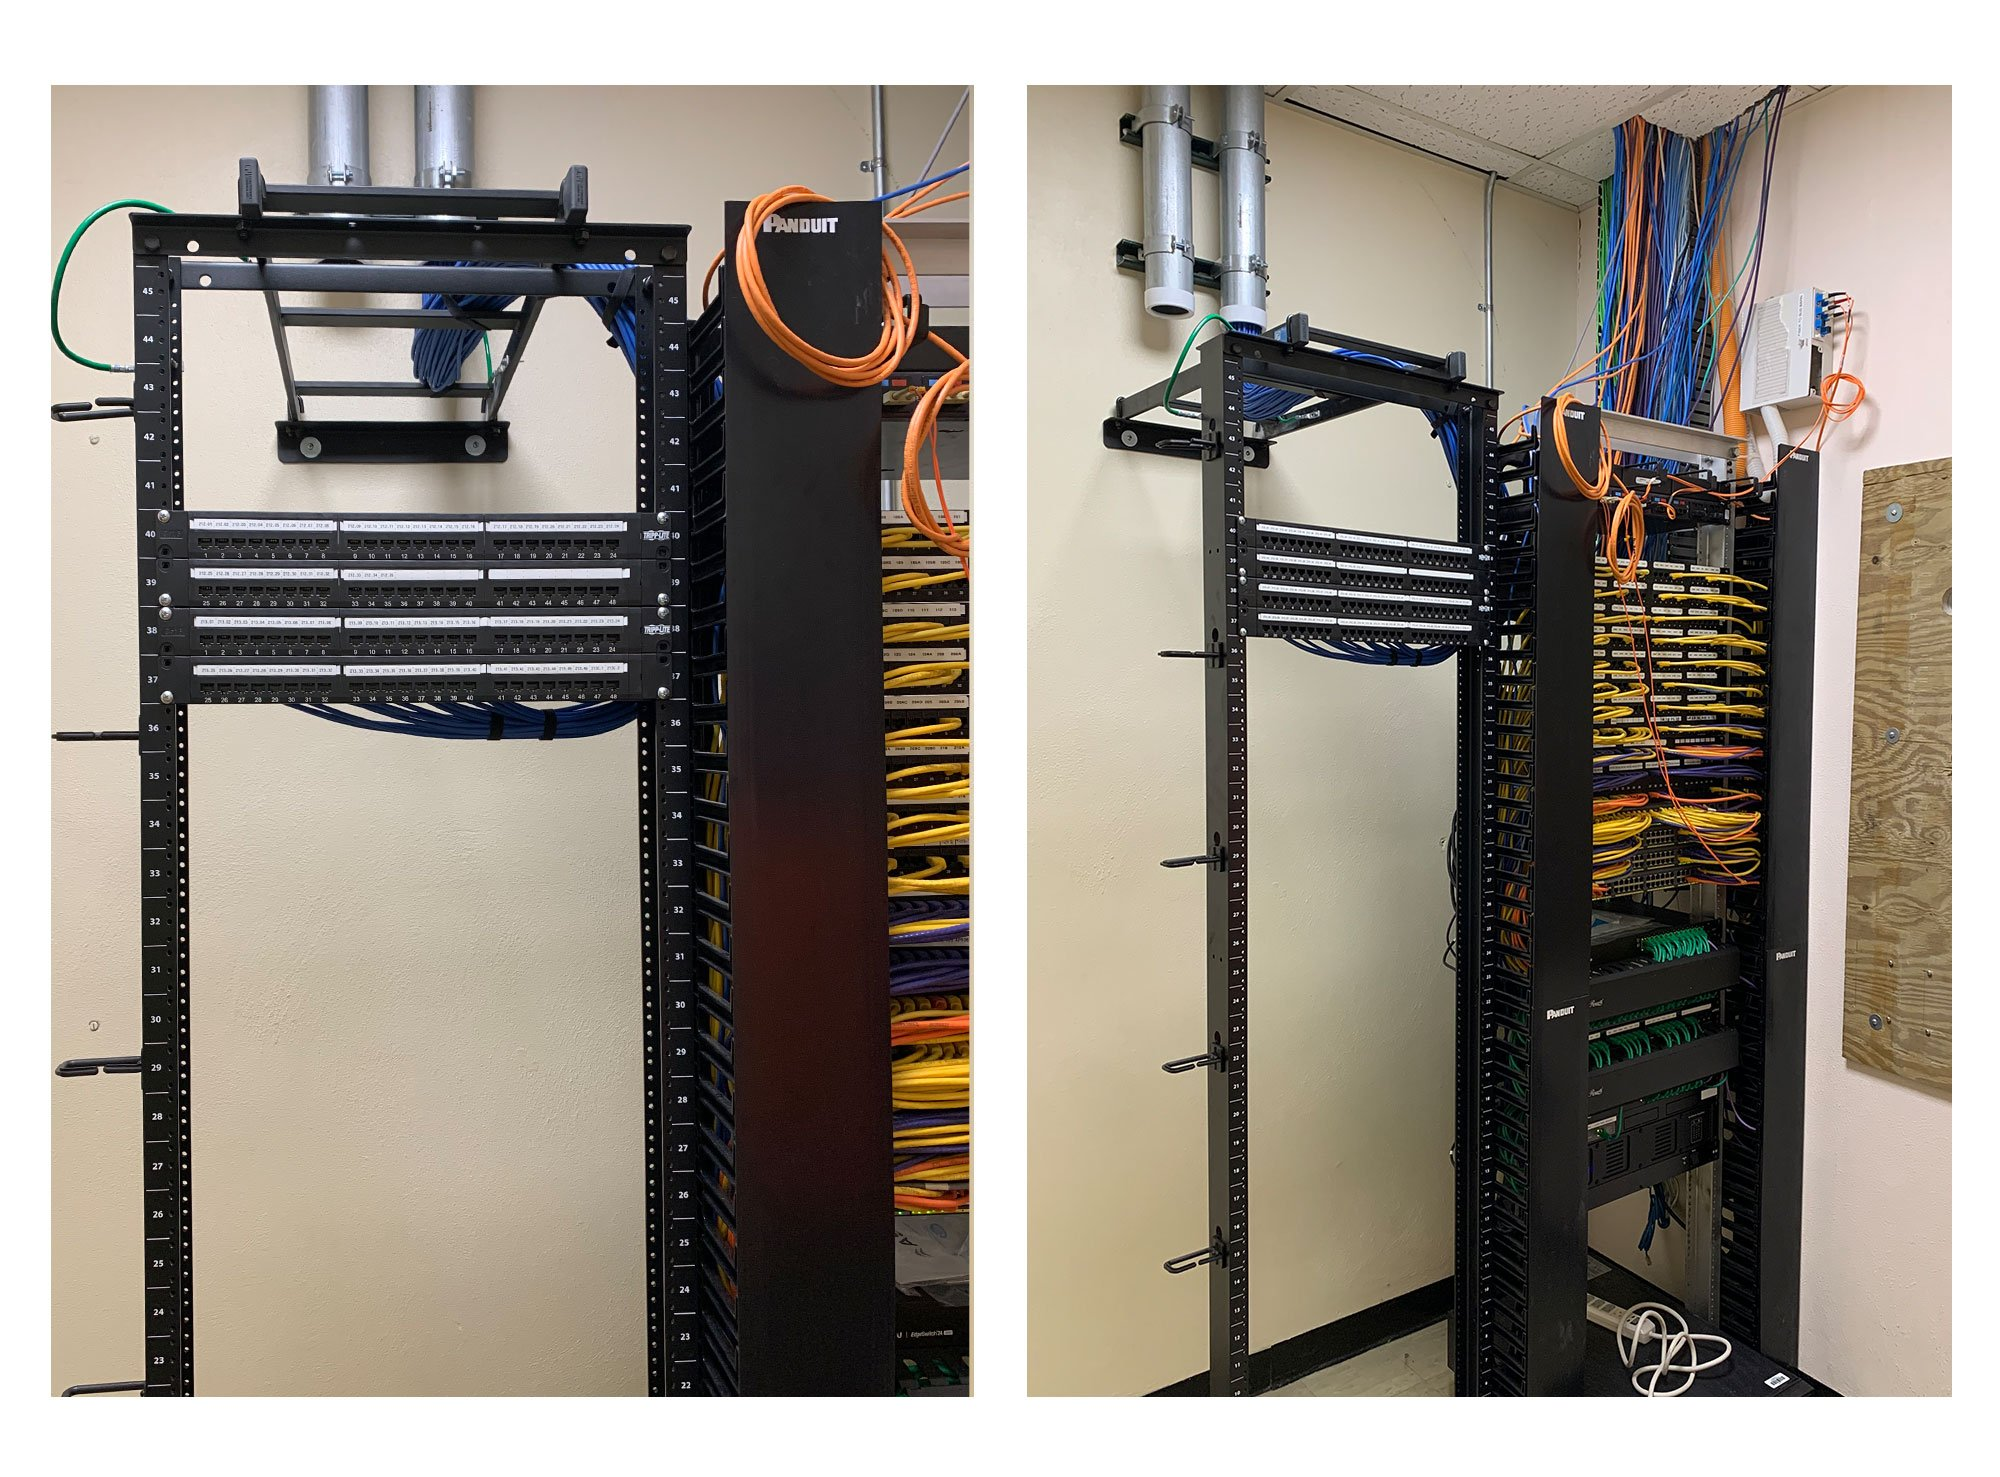 NTI excellence in network cabling